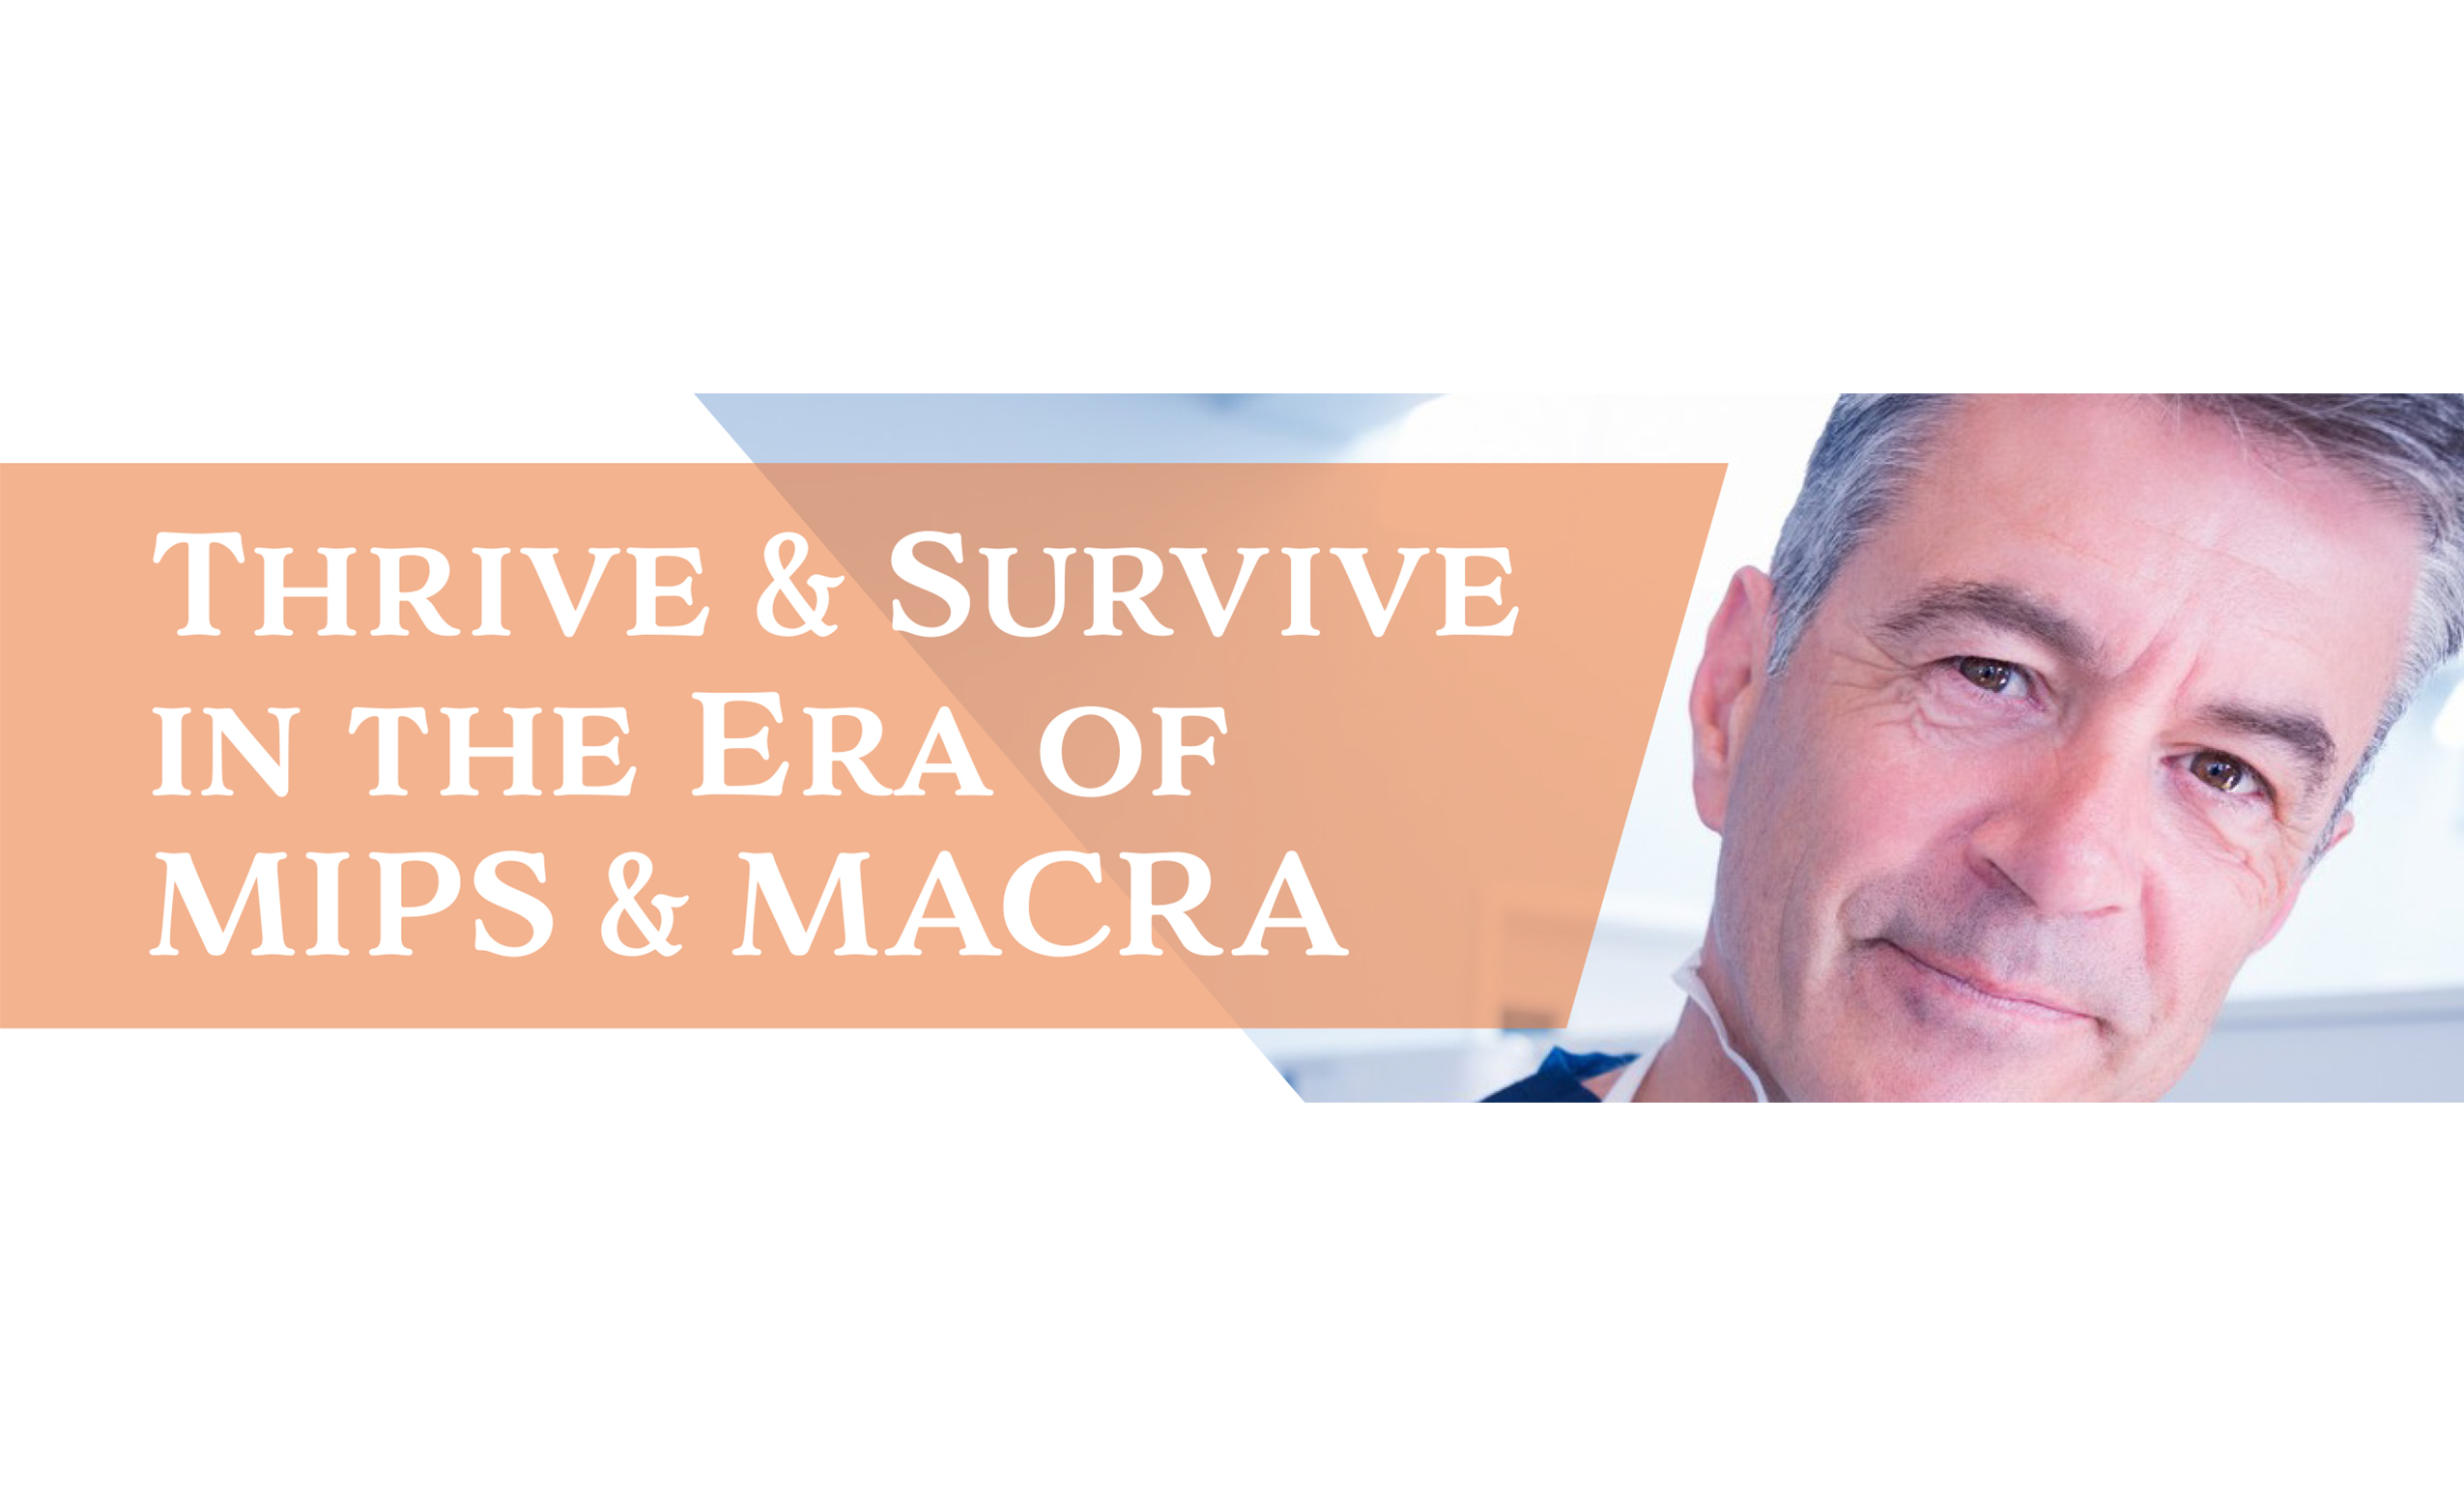 Thrive & Survive in the Era of MIPS & MACRA